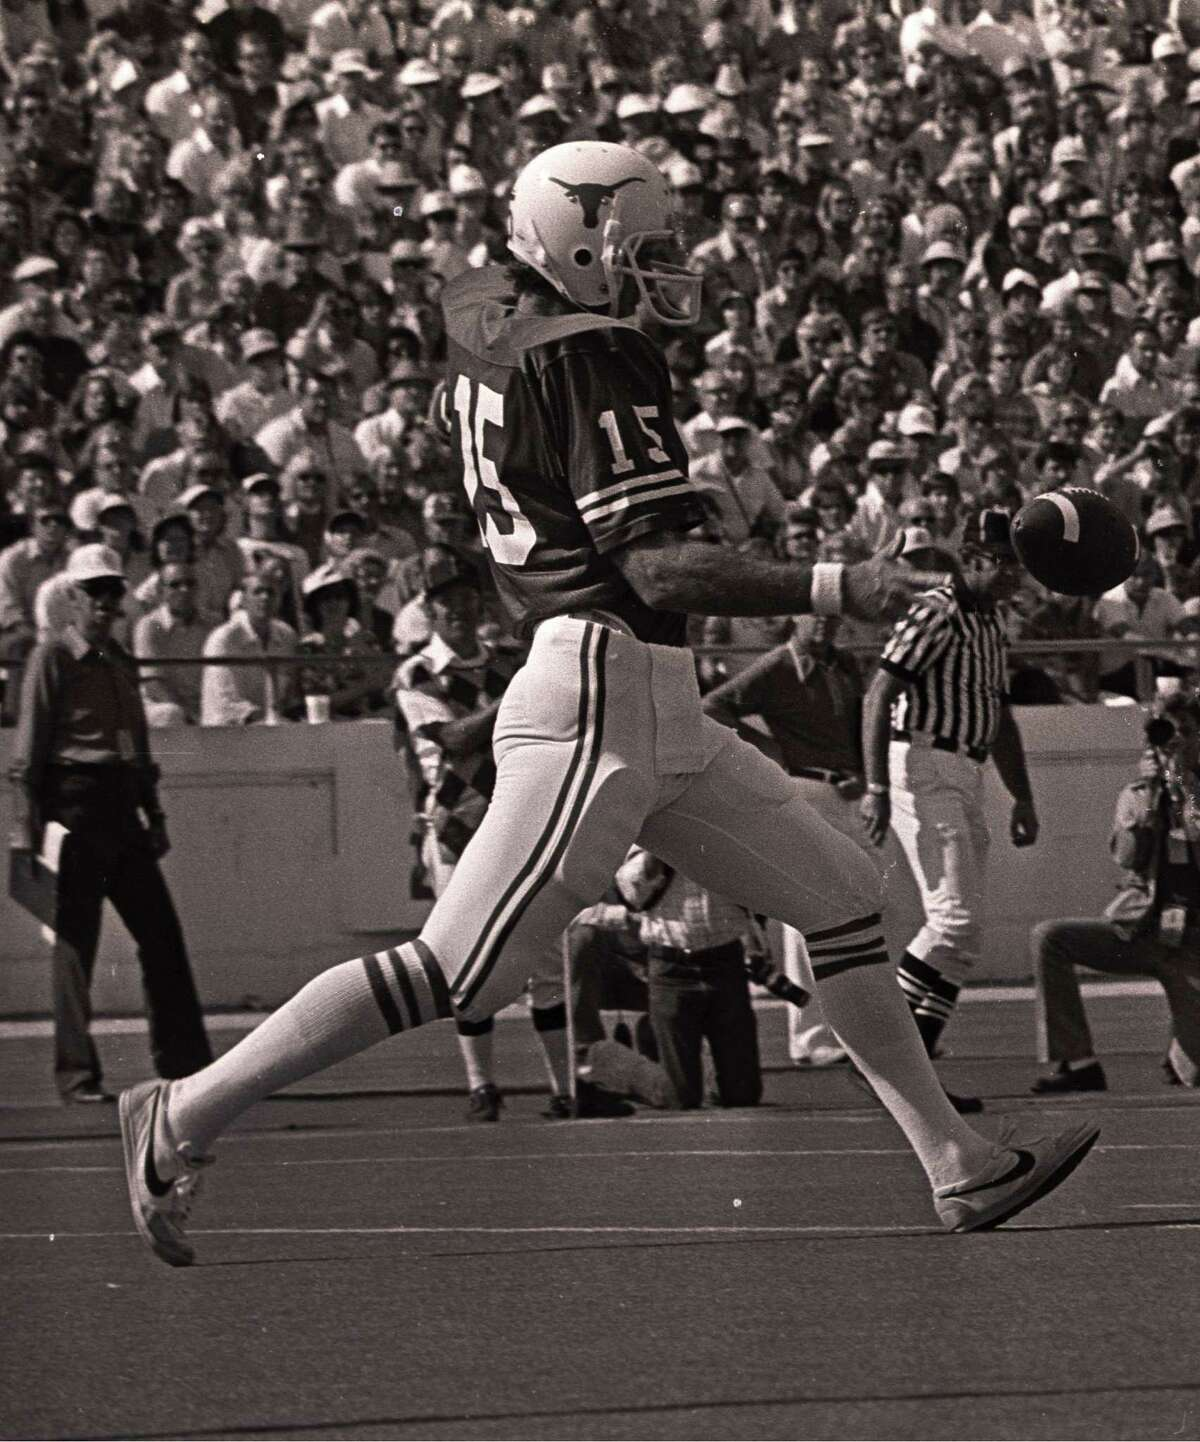 Russell Erxleben was known for both his booming punts and lengthy field goals at UT in the late 1970s.